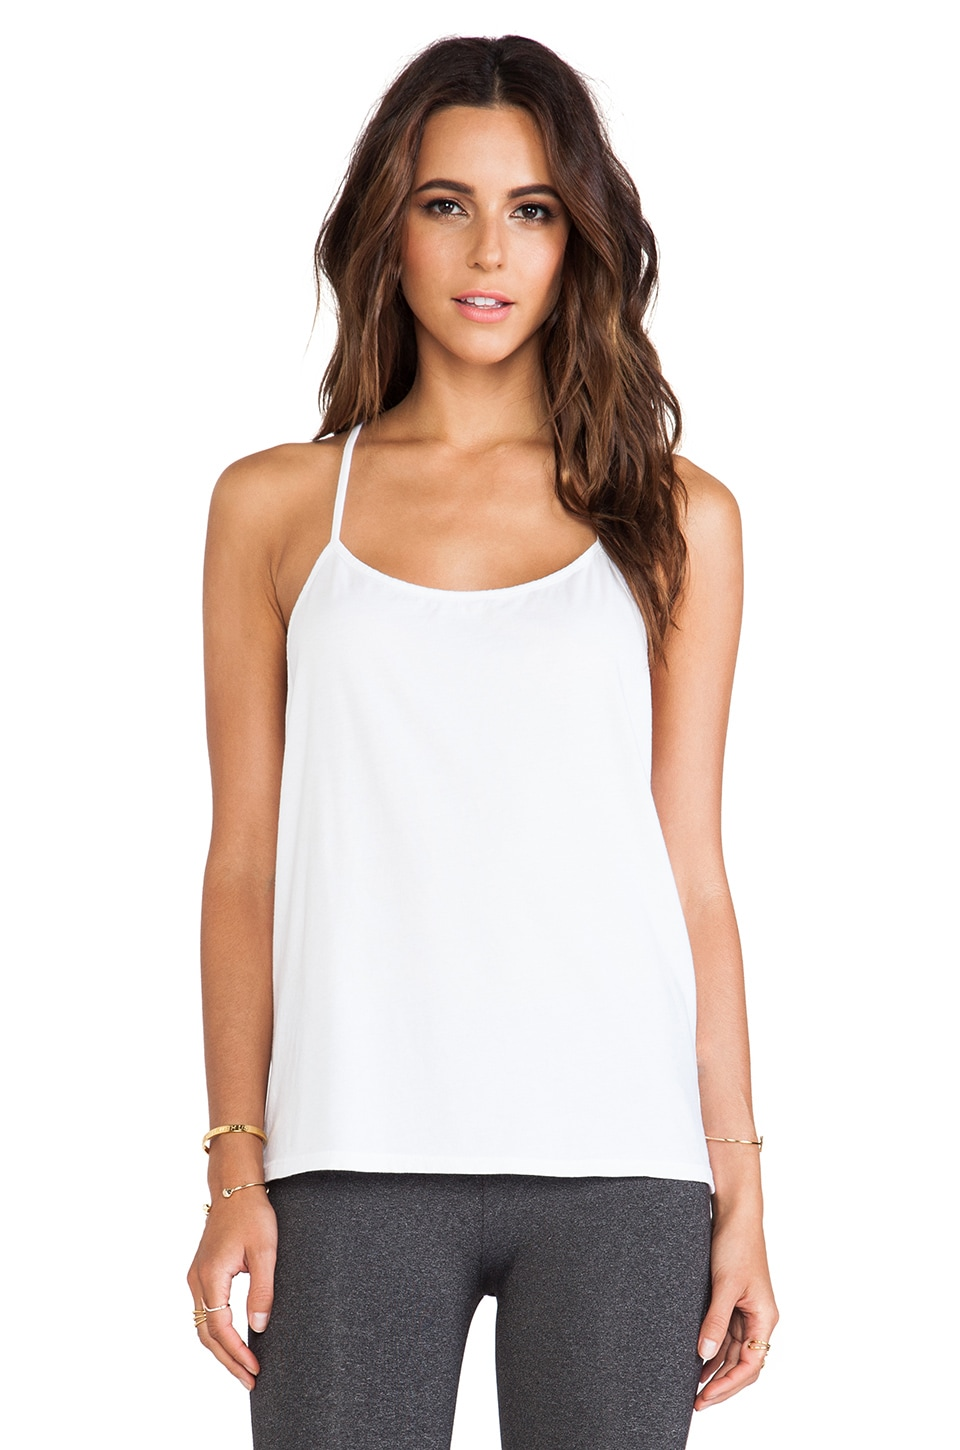 SOLOW So Low A-Line Racerback Tank in White